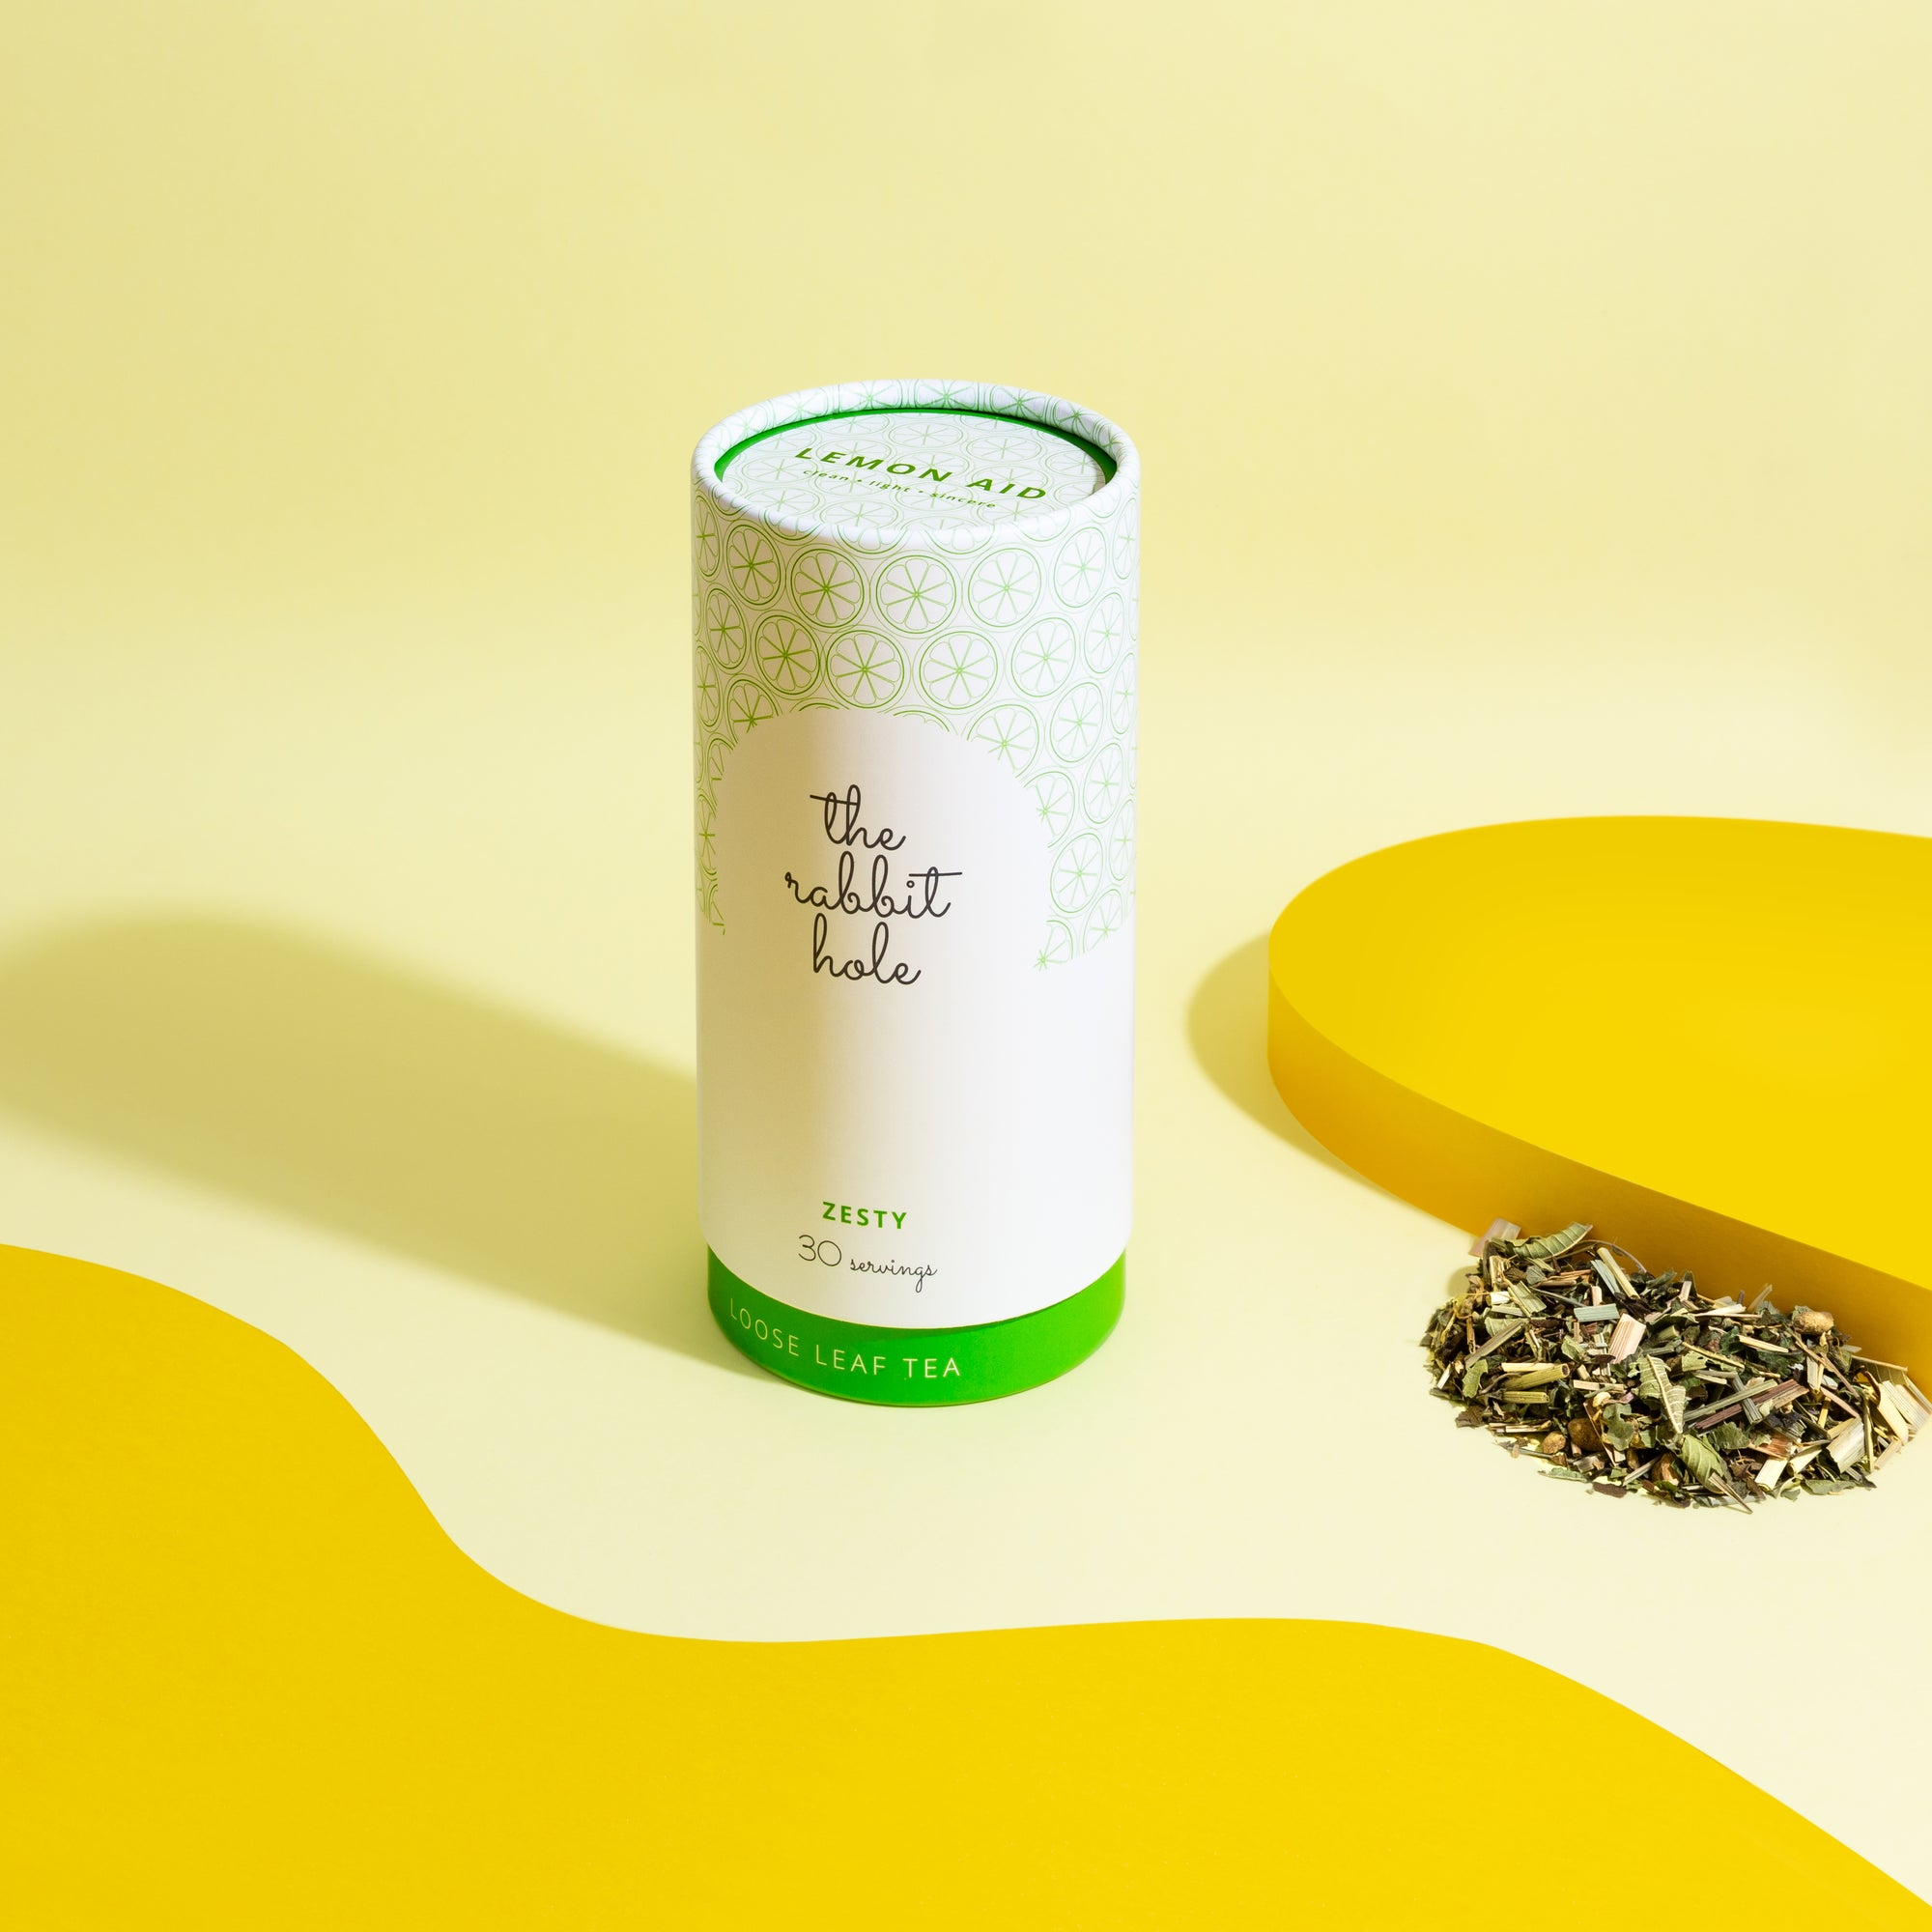 Lemon Aid loose leaf tea by The Rabbit Hole - Australian Made Tea. Tea canister on colourful yellow background